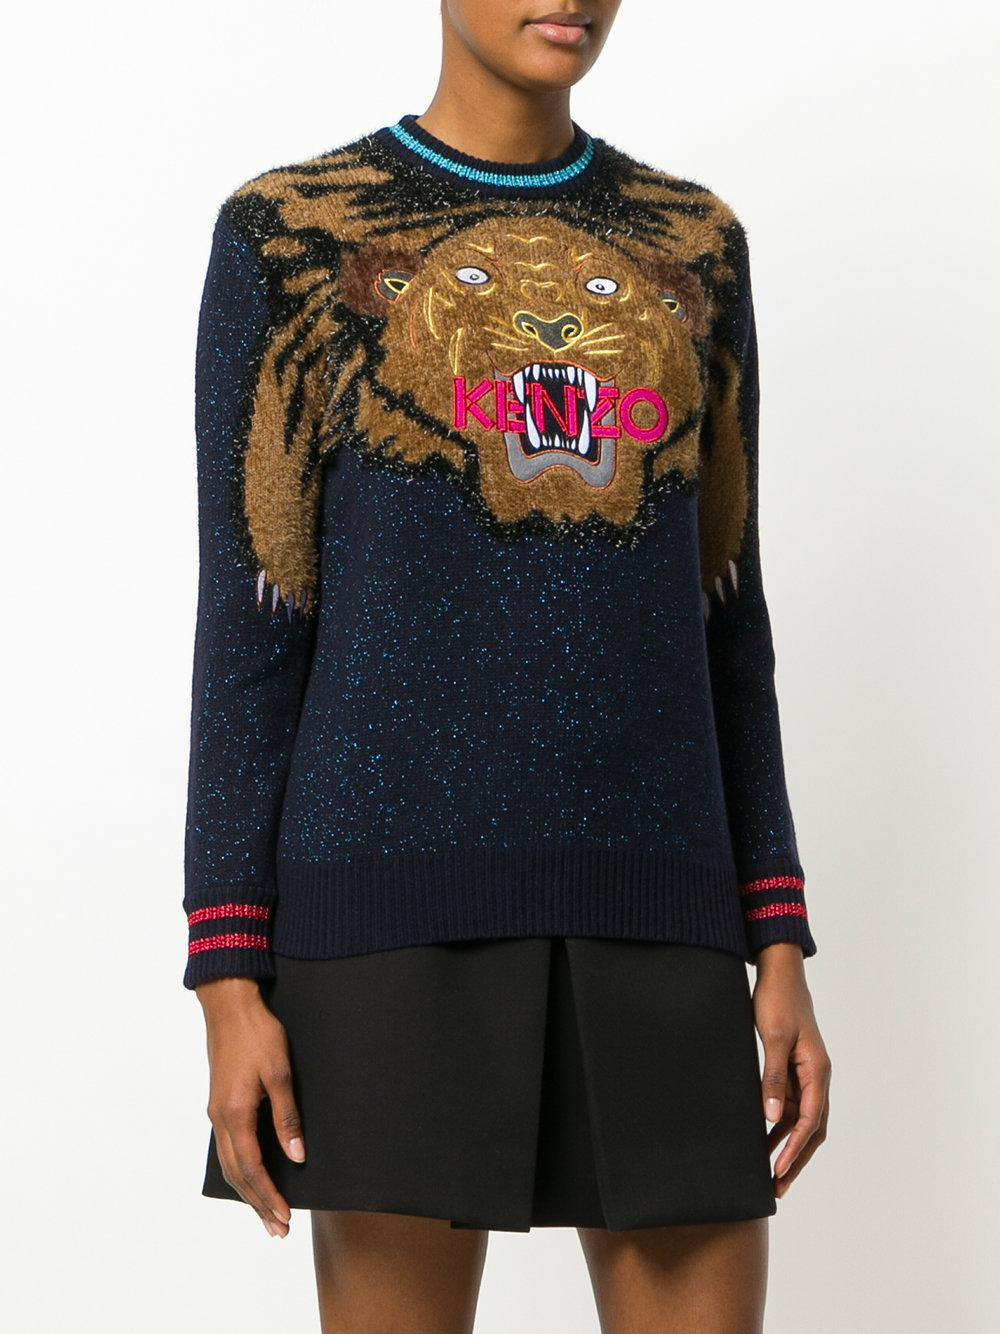 Kenzo Holiday Capsule Collection Embroidered: Kenzo Embroidered Tiger Christmas Jumper In Blue